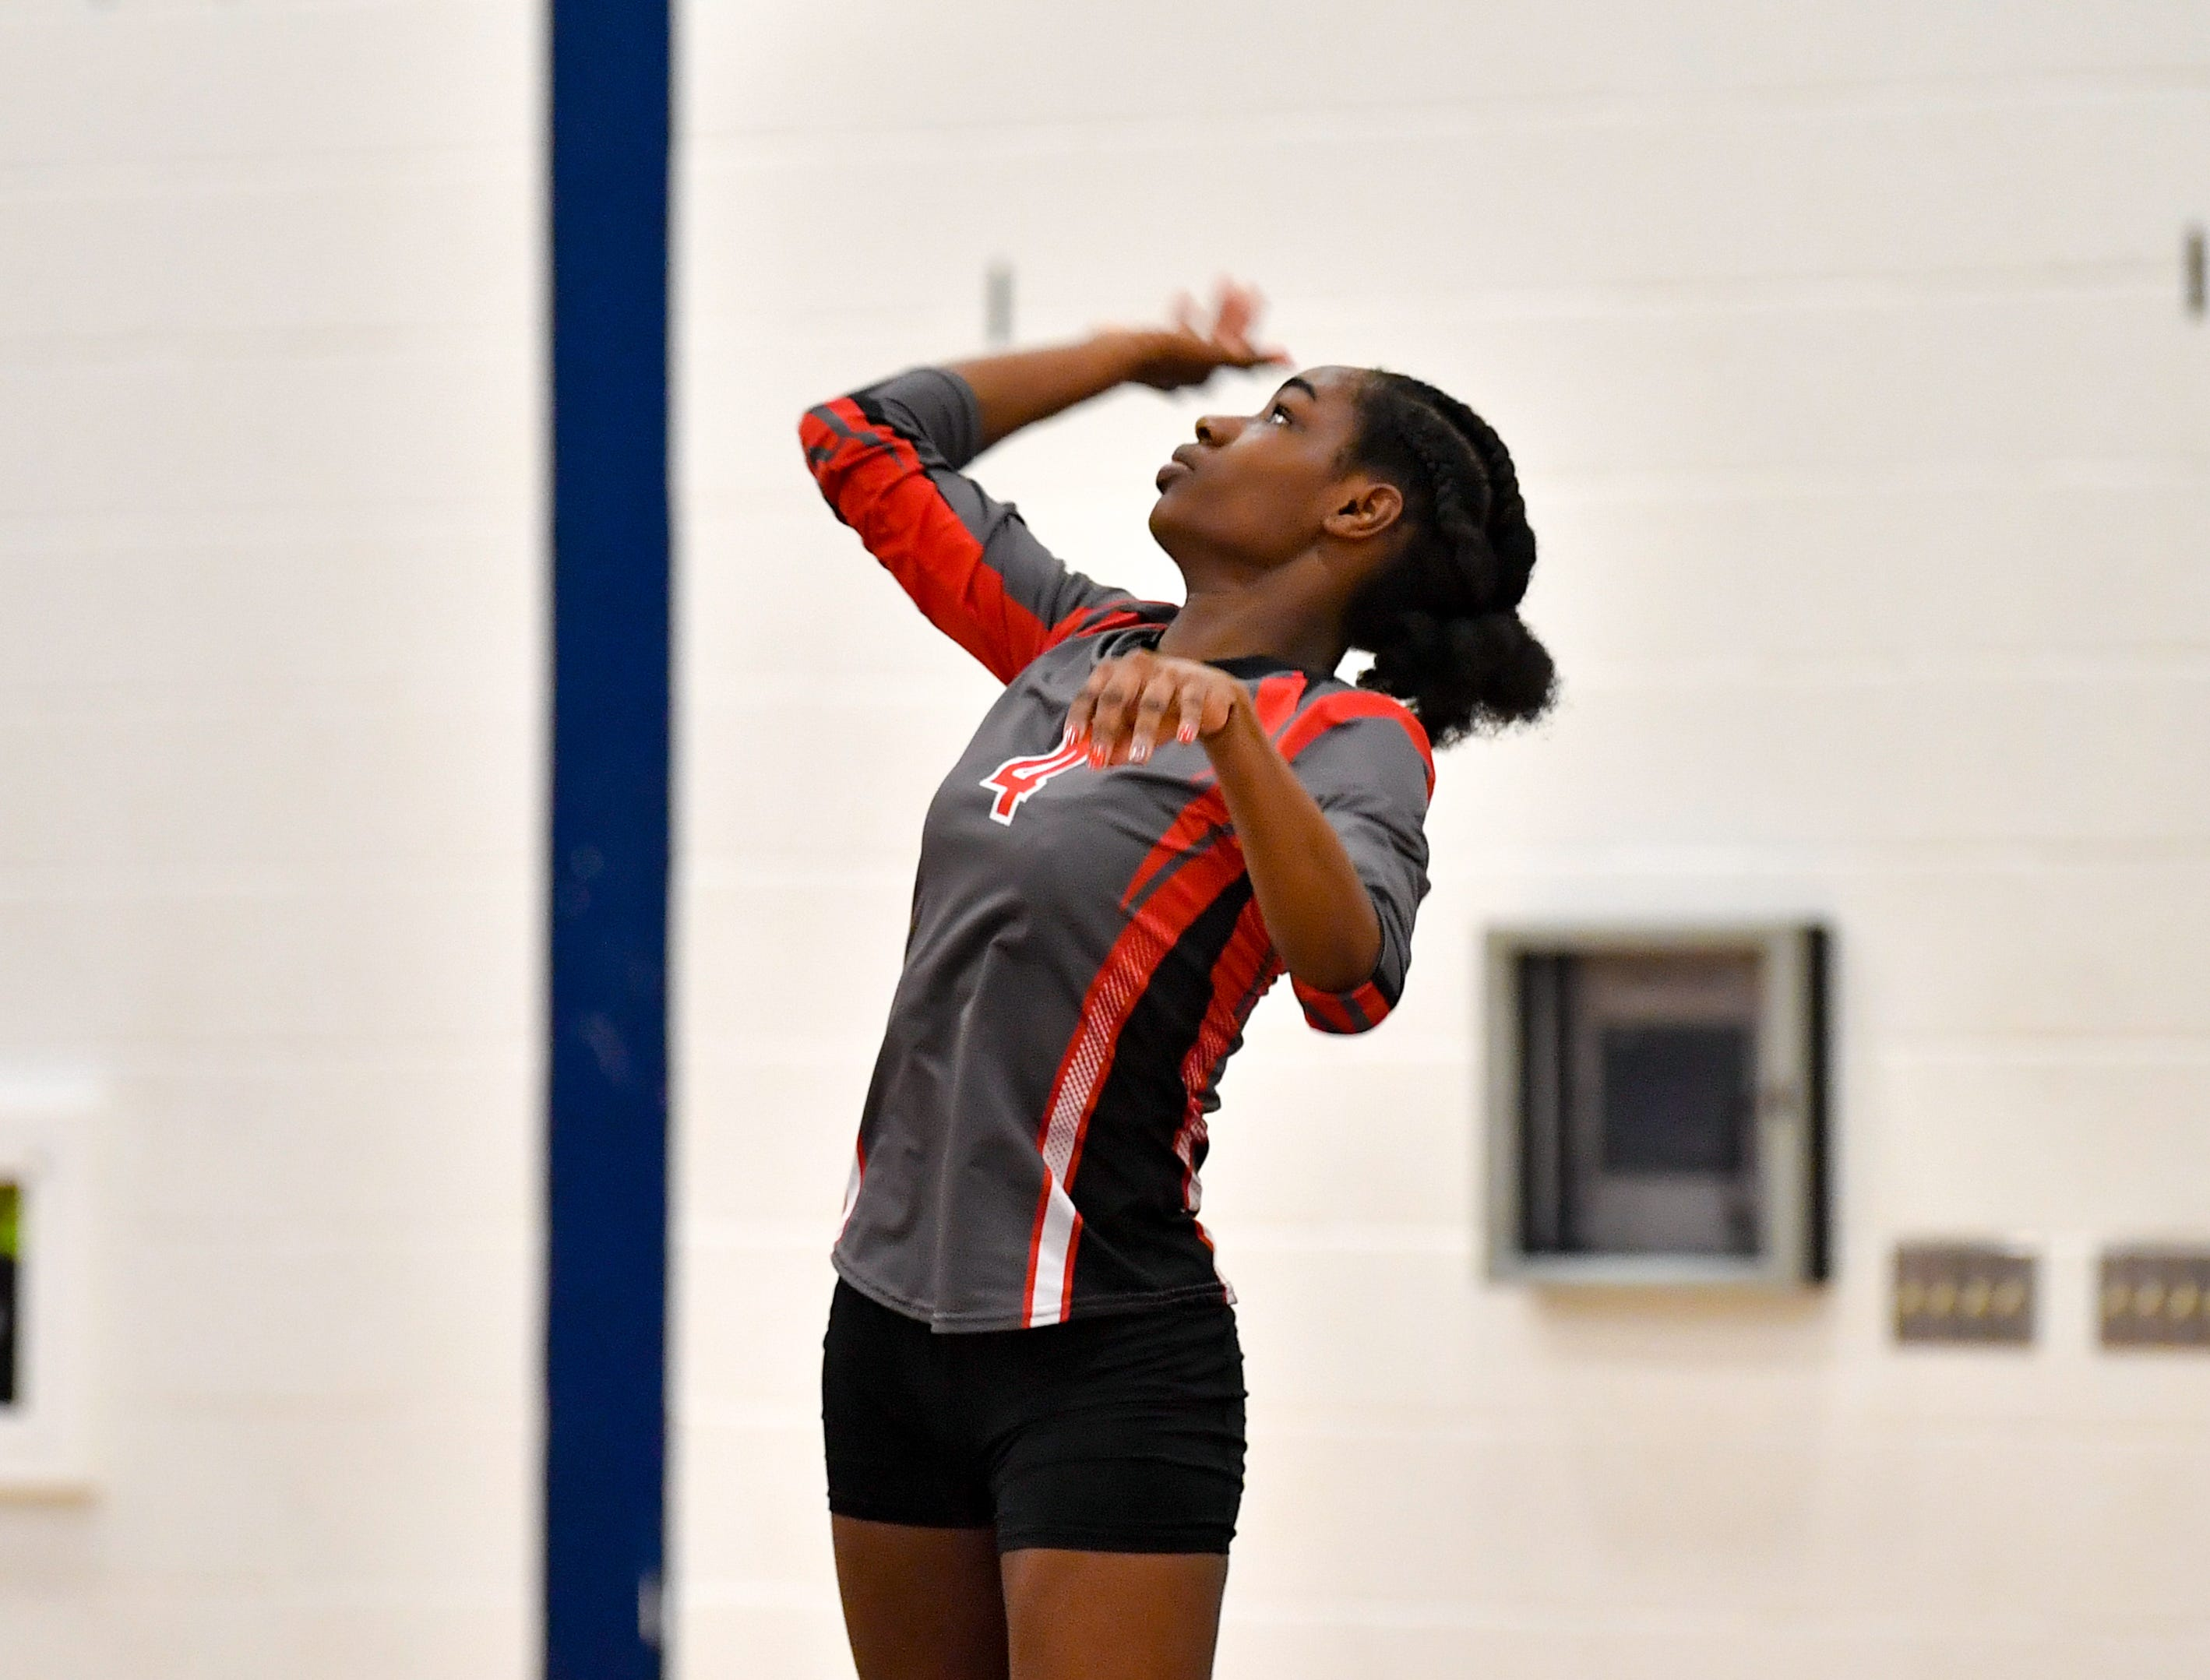 Frankie White (4) serves the ball during the District 3 Class 3A girls' volleyball quarterfinals between Dover and York Suburban at West York High School, October 30, 2018. The Eagles defeated the Trojans 3-2.